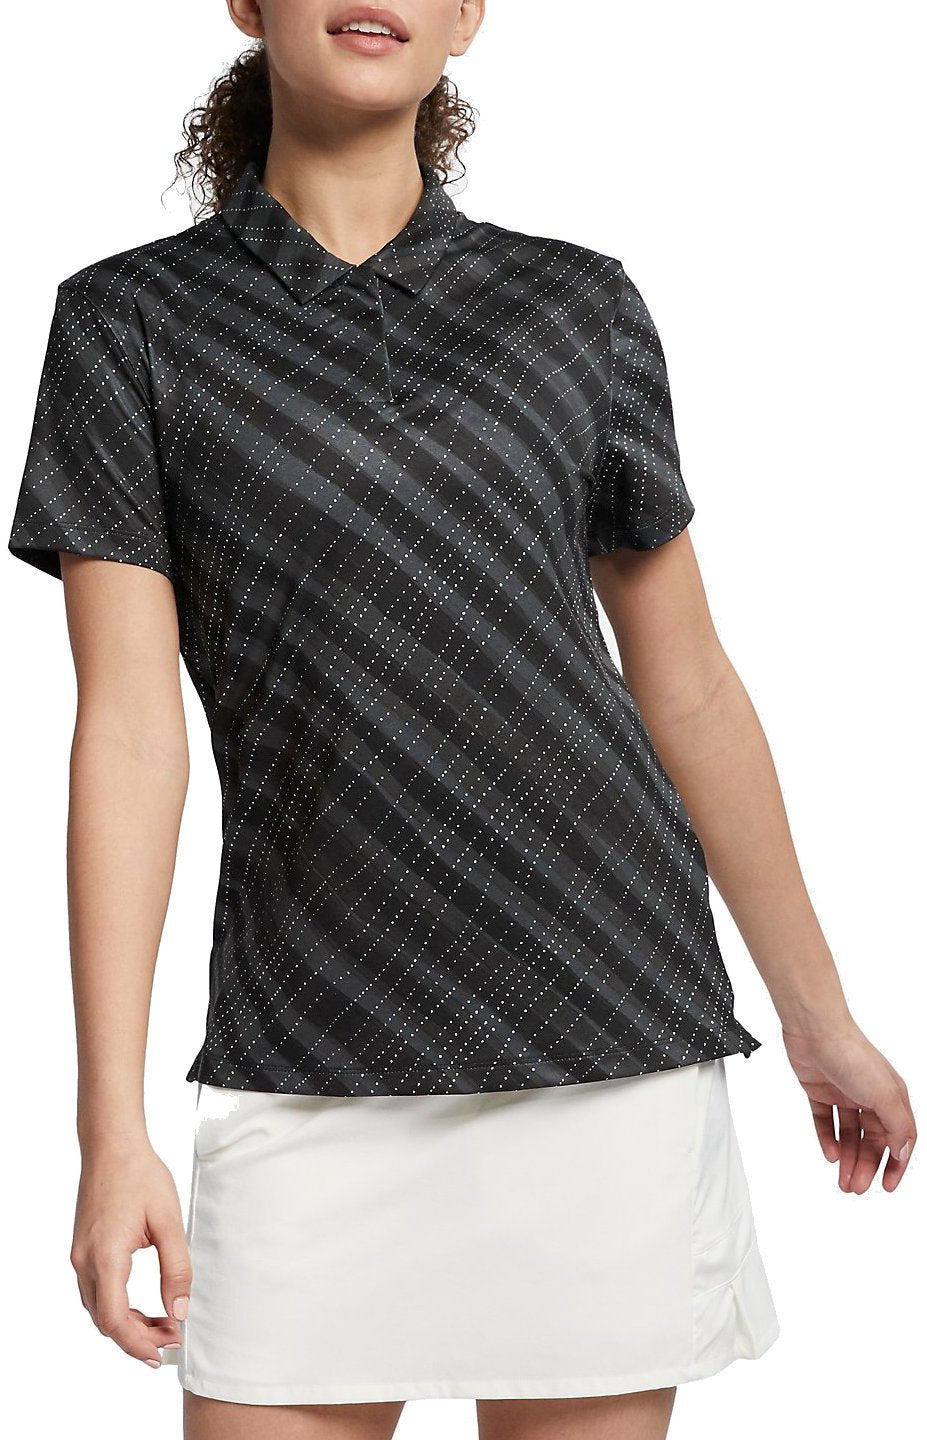 Women's Nike Golf Printed Polo Shirt.     AJ5337-010